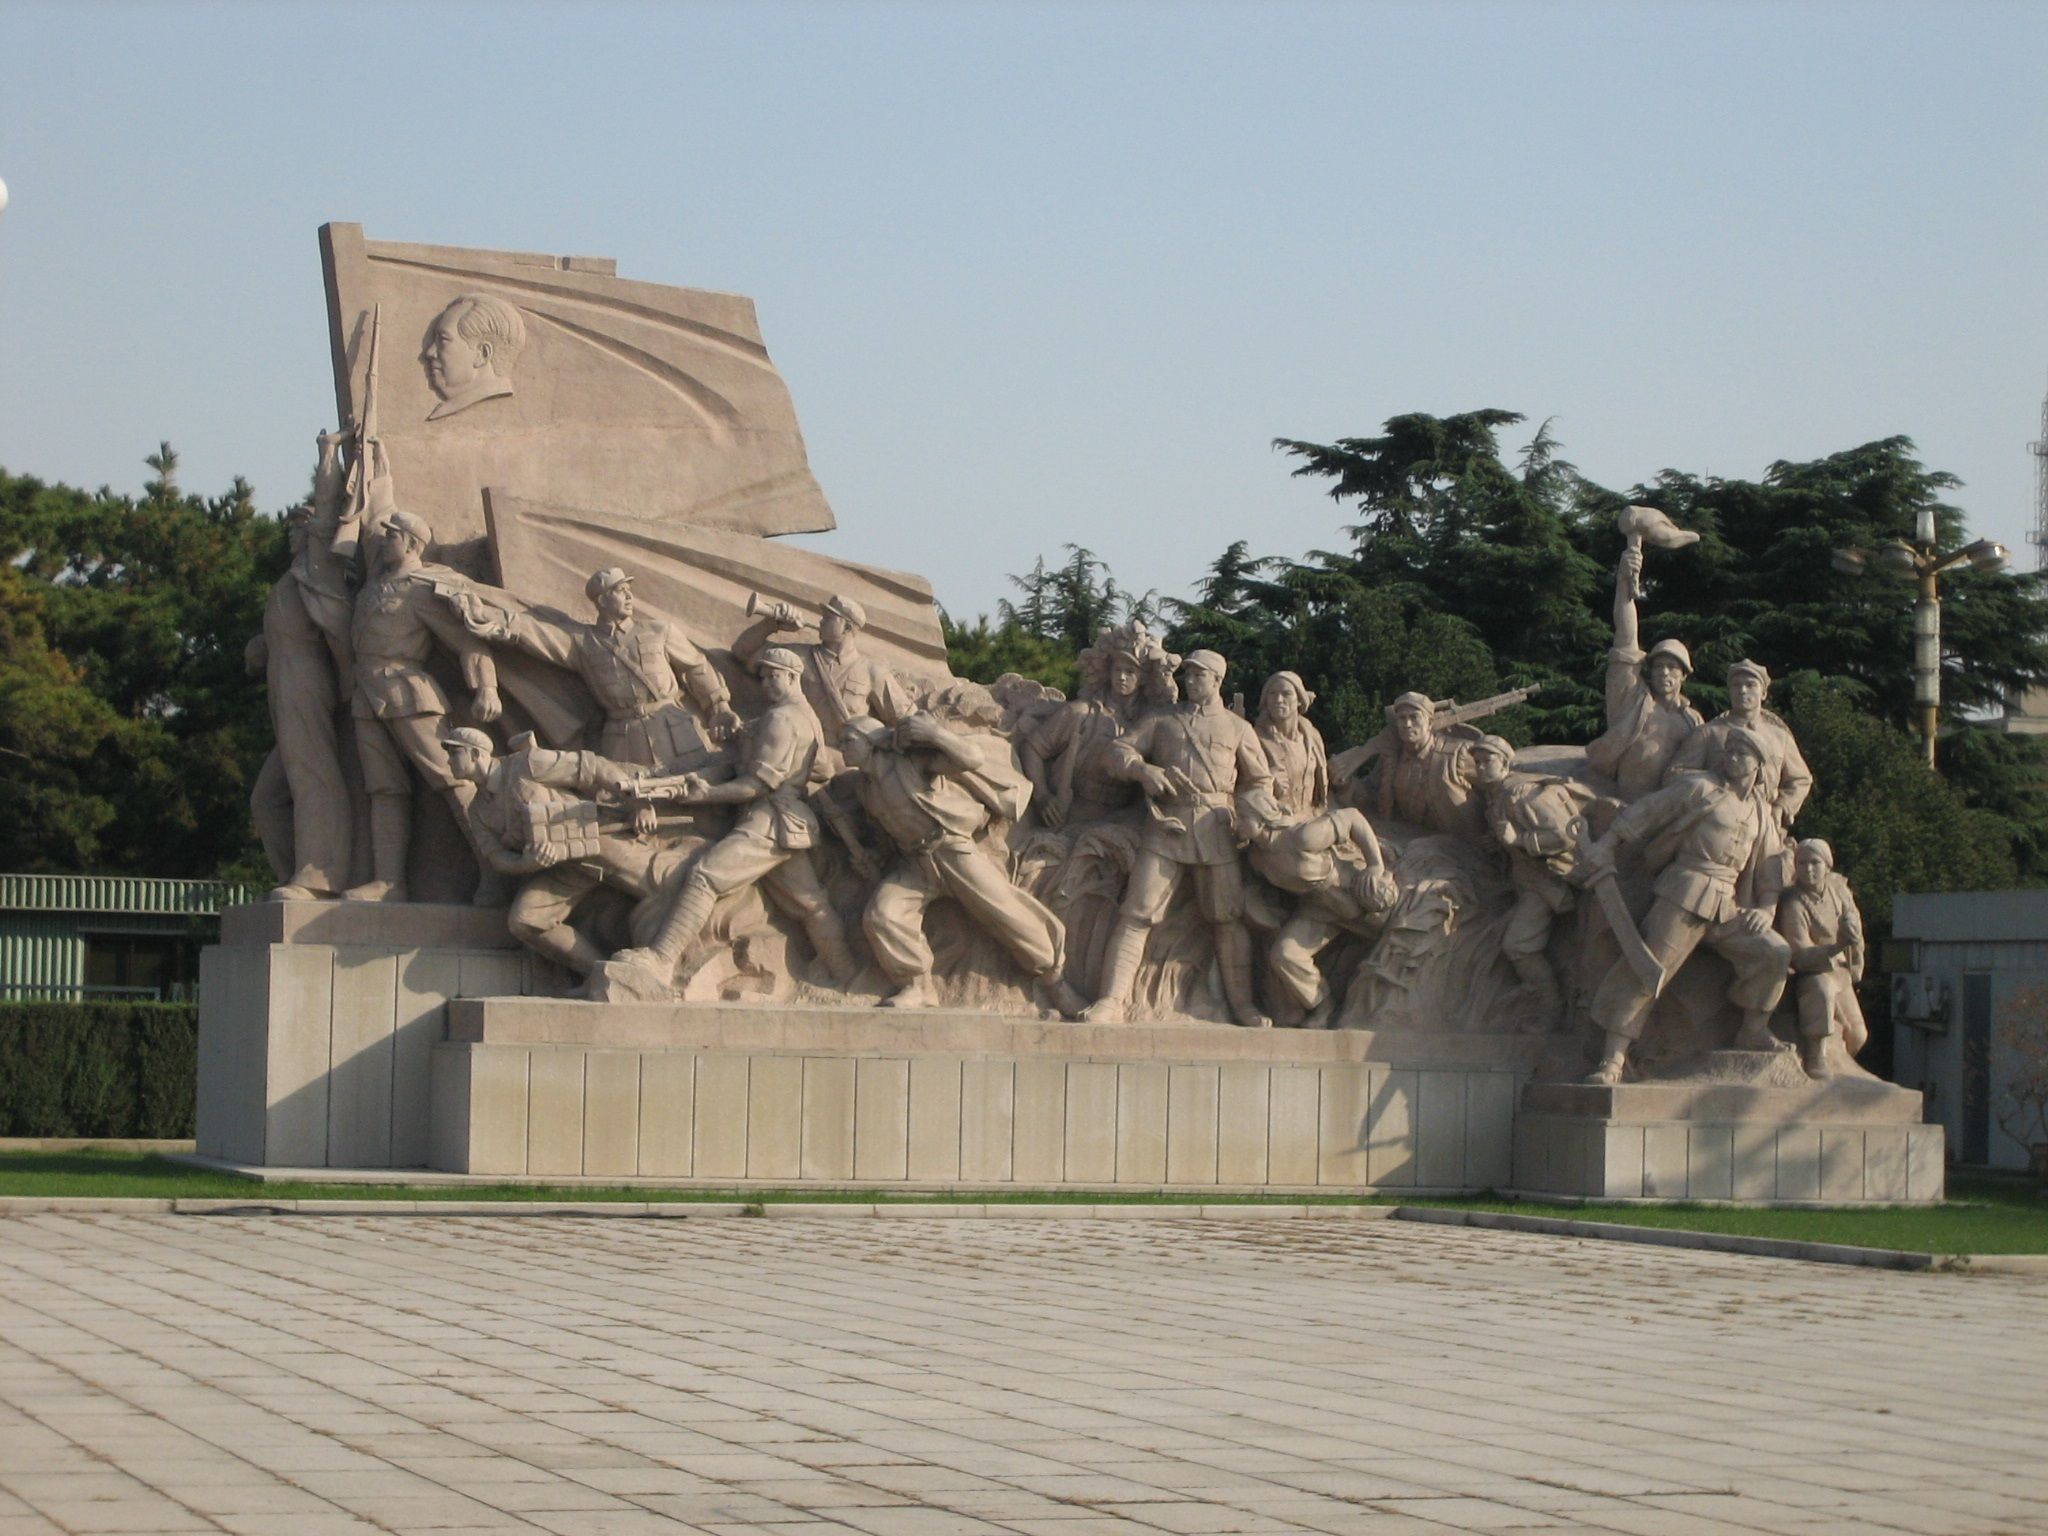 If the Rzhev memorial is built like this, it will be very